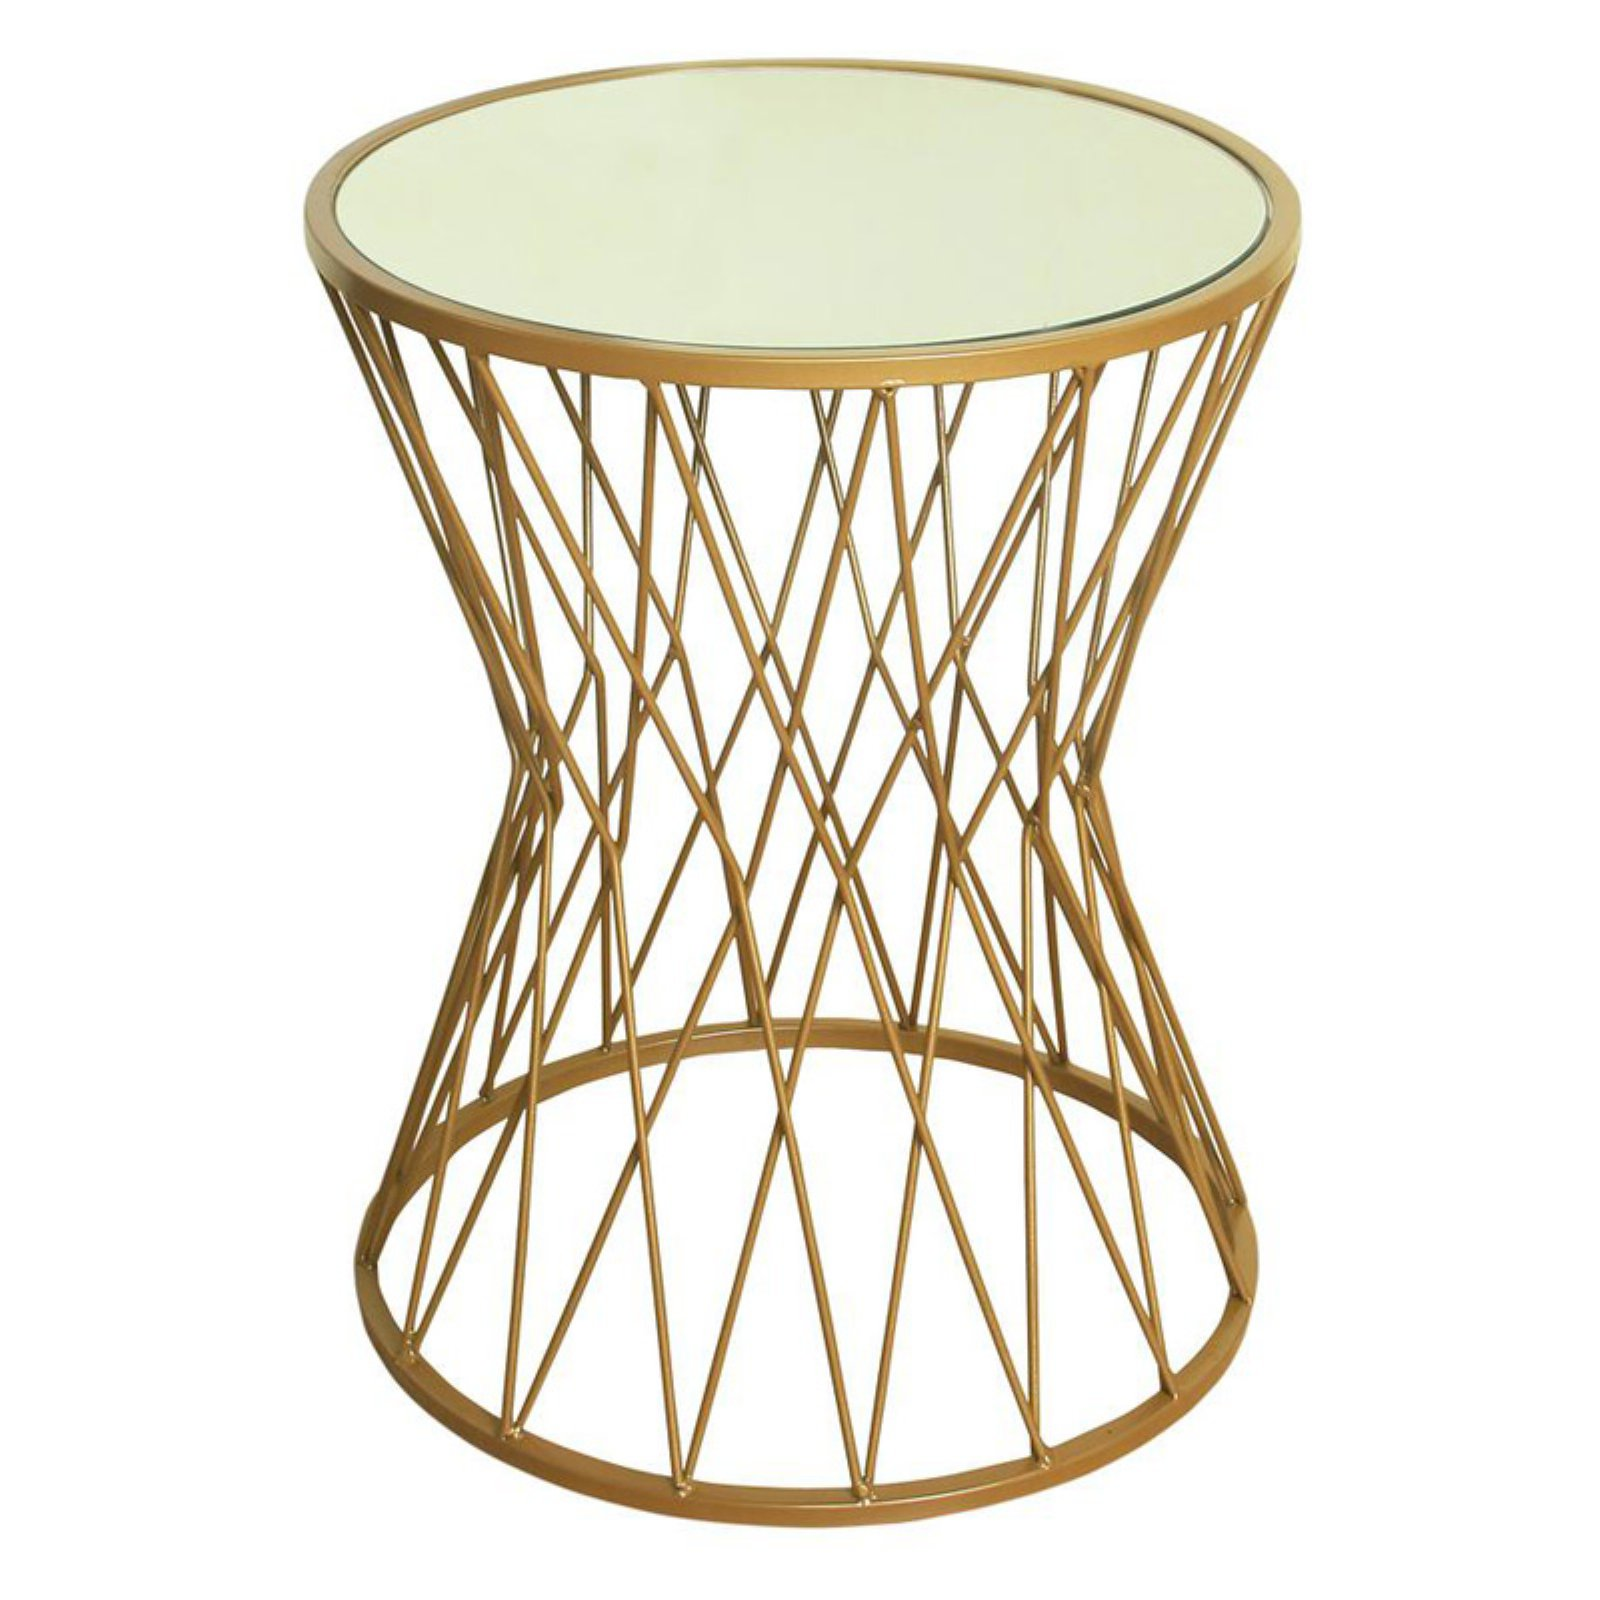 homepop hourglass metal accent table gold mirror top inuse mirrored ture mid century lounge chair outdoor side wicker marble coffee with storage cooking antique square dining room